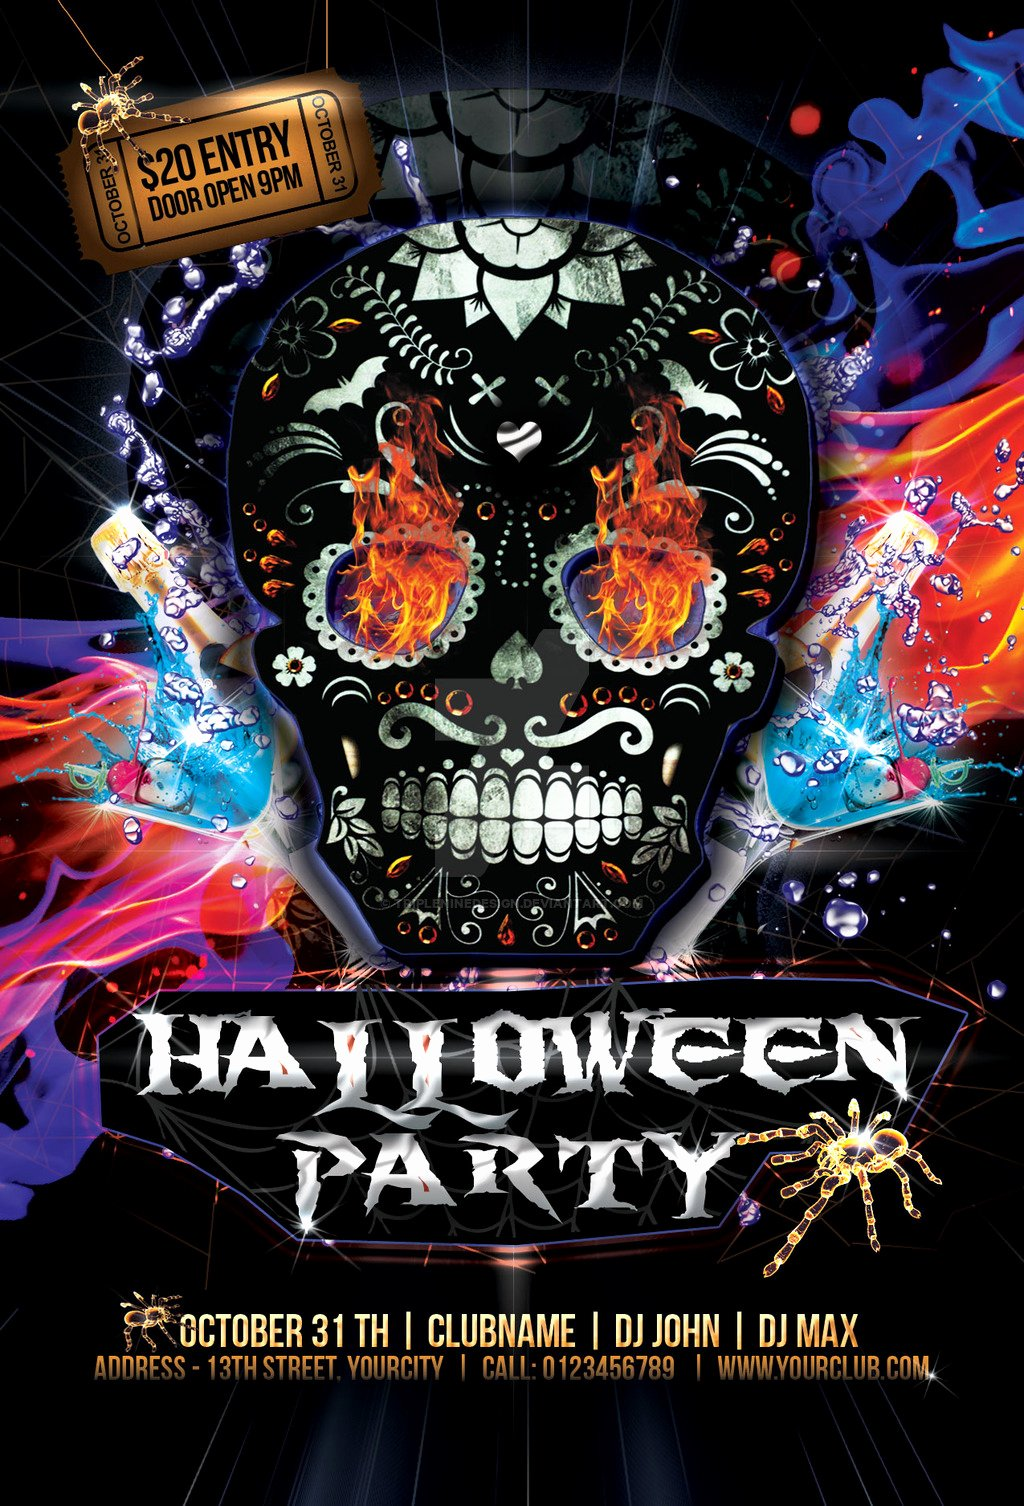 Halloween Party Flyer Template New Halloween Party Flyer by Tripleninedesign On Deviantart